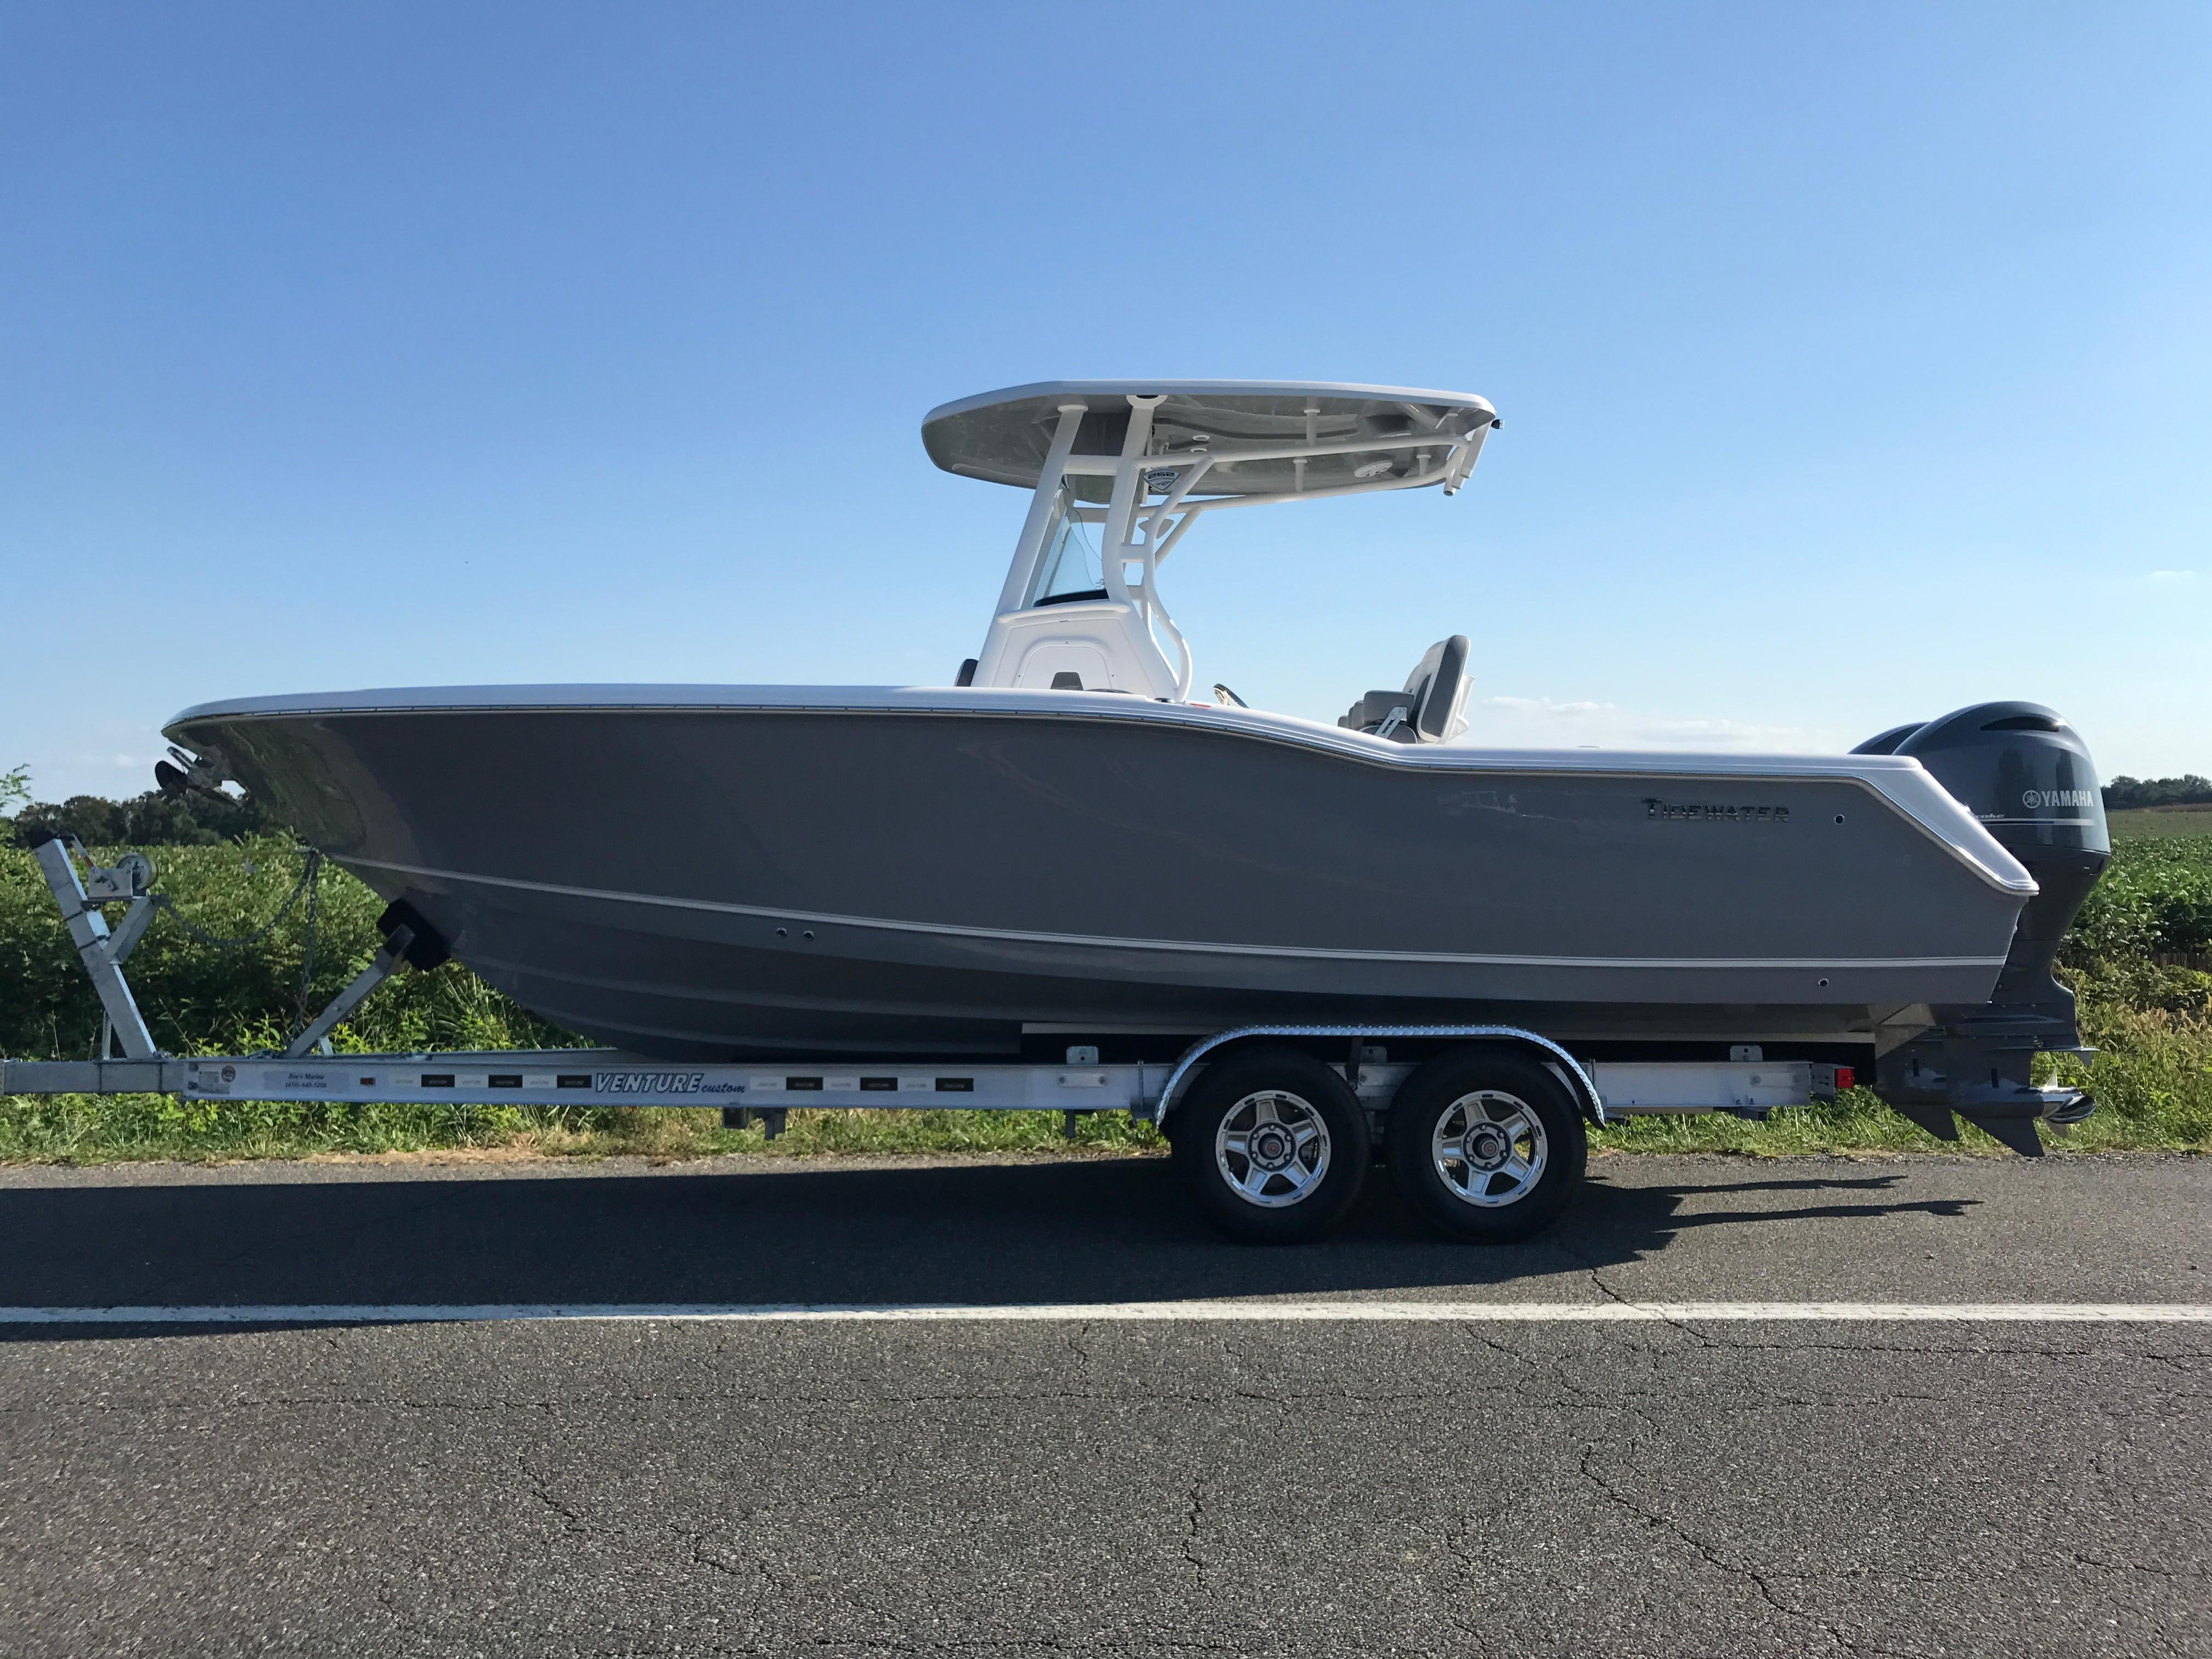 New Tidewater 252 CC Adventure Boats For Sale - Jim's Marine